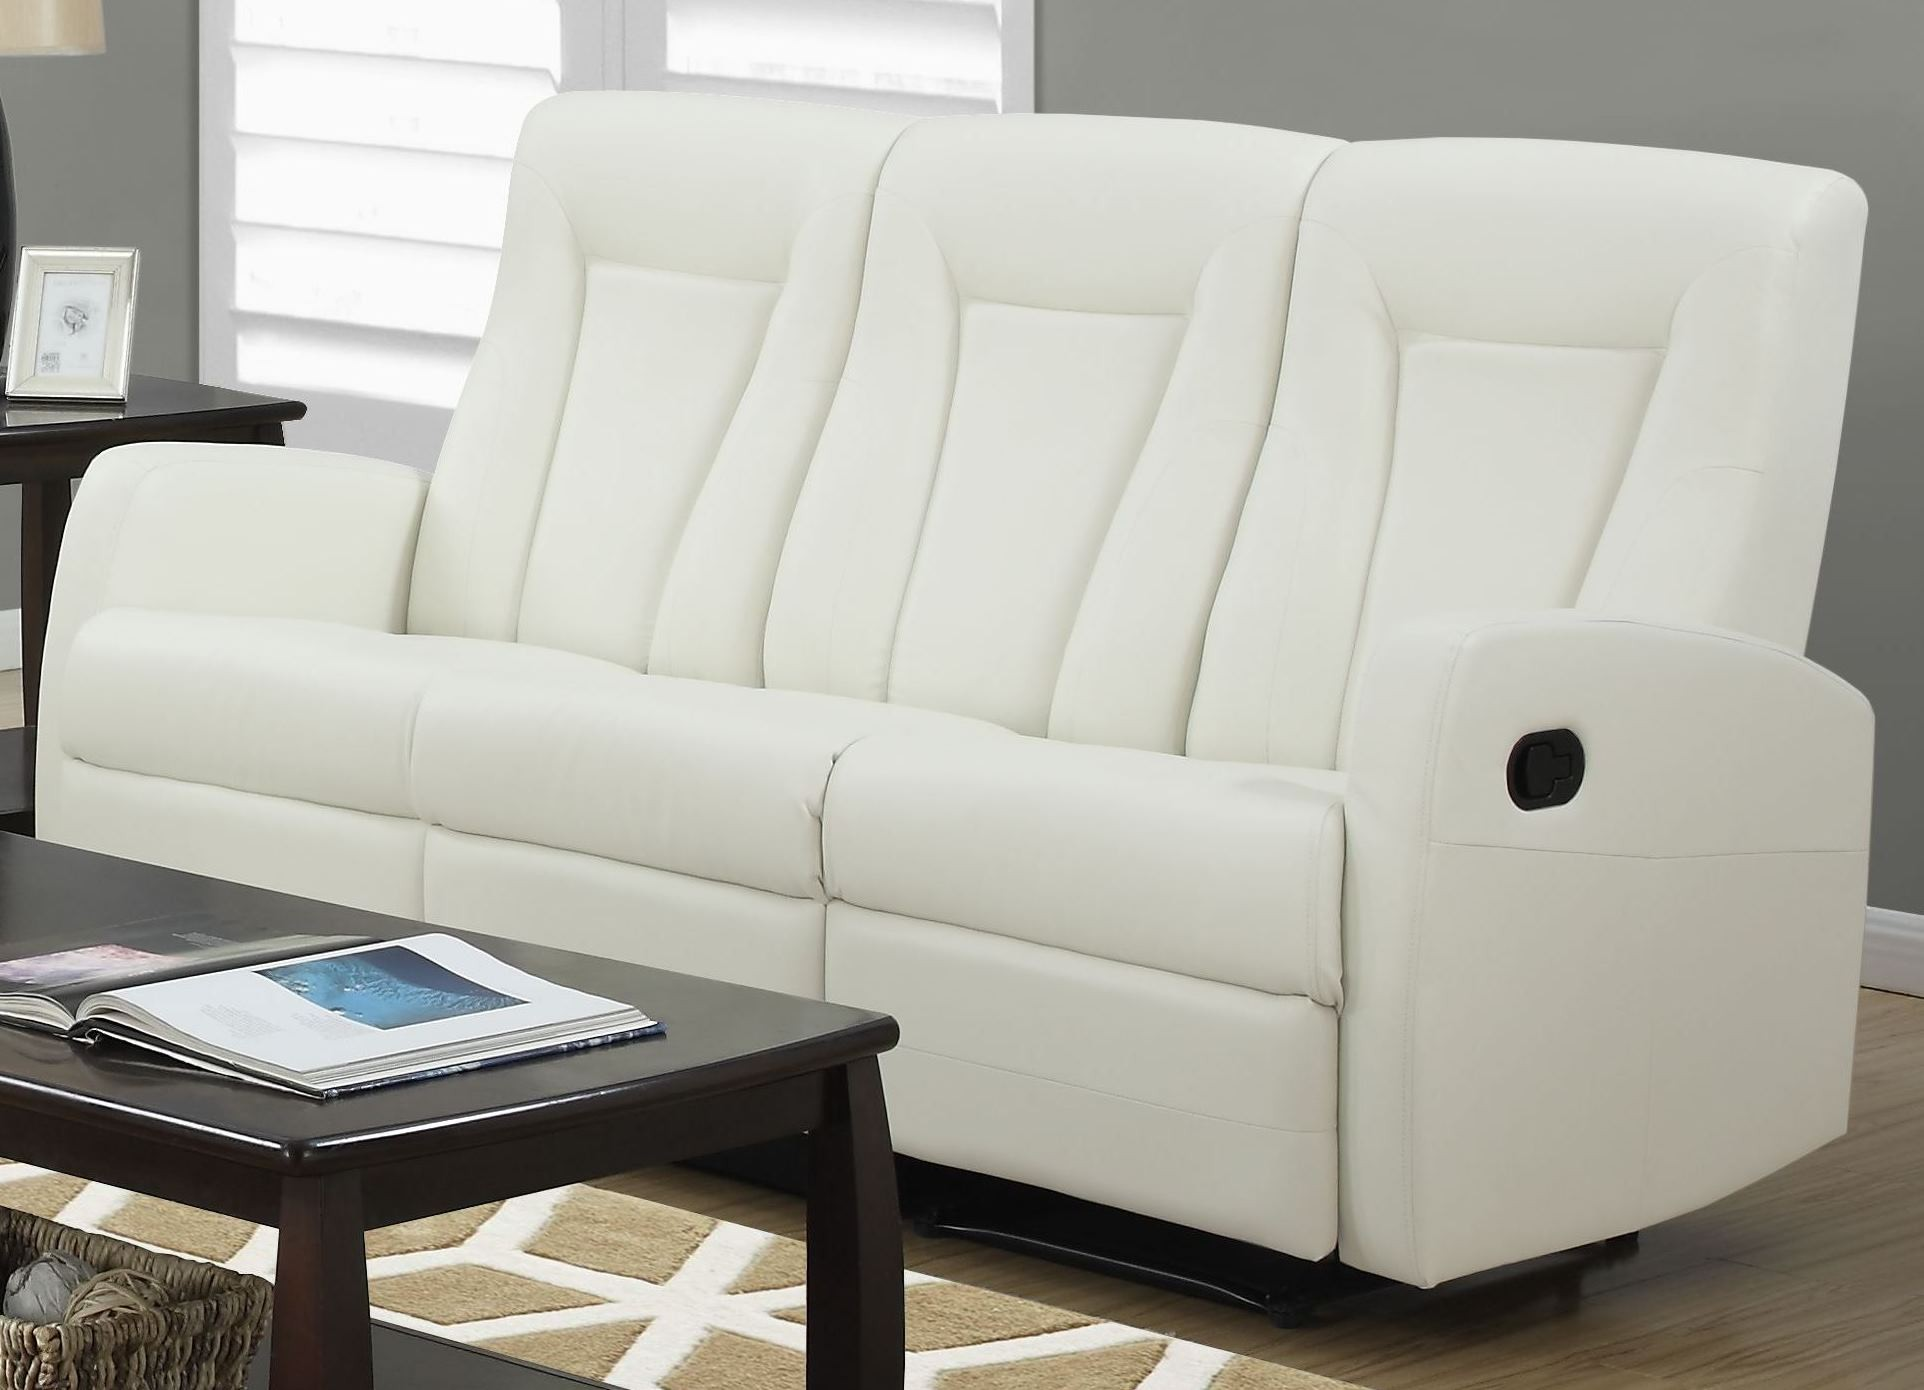 82iv 3 ivory bonded leather reclining living room set Ivory leather living room furniture